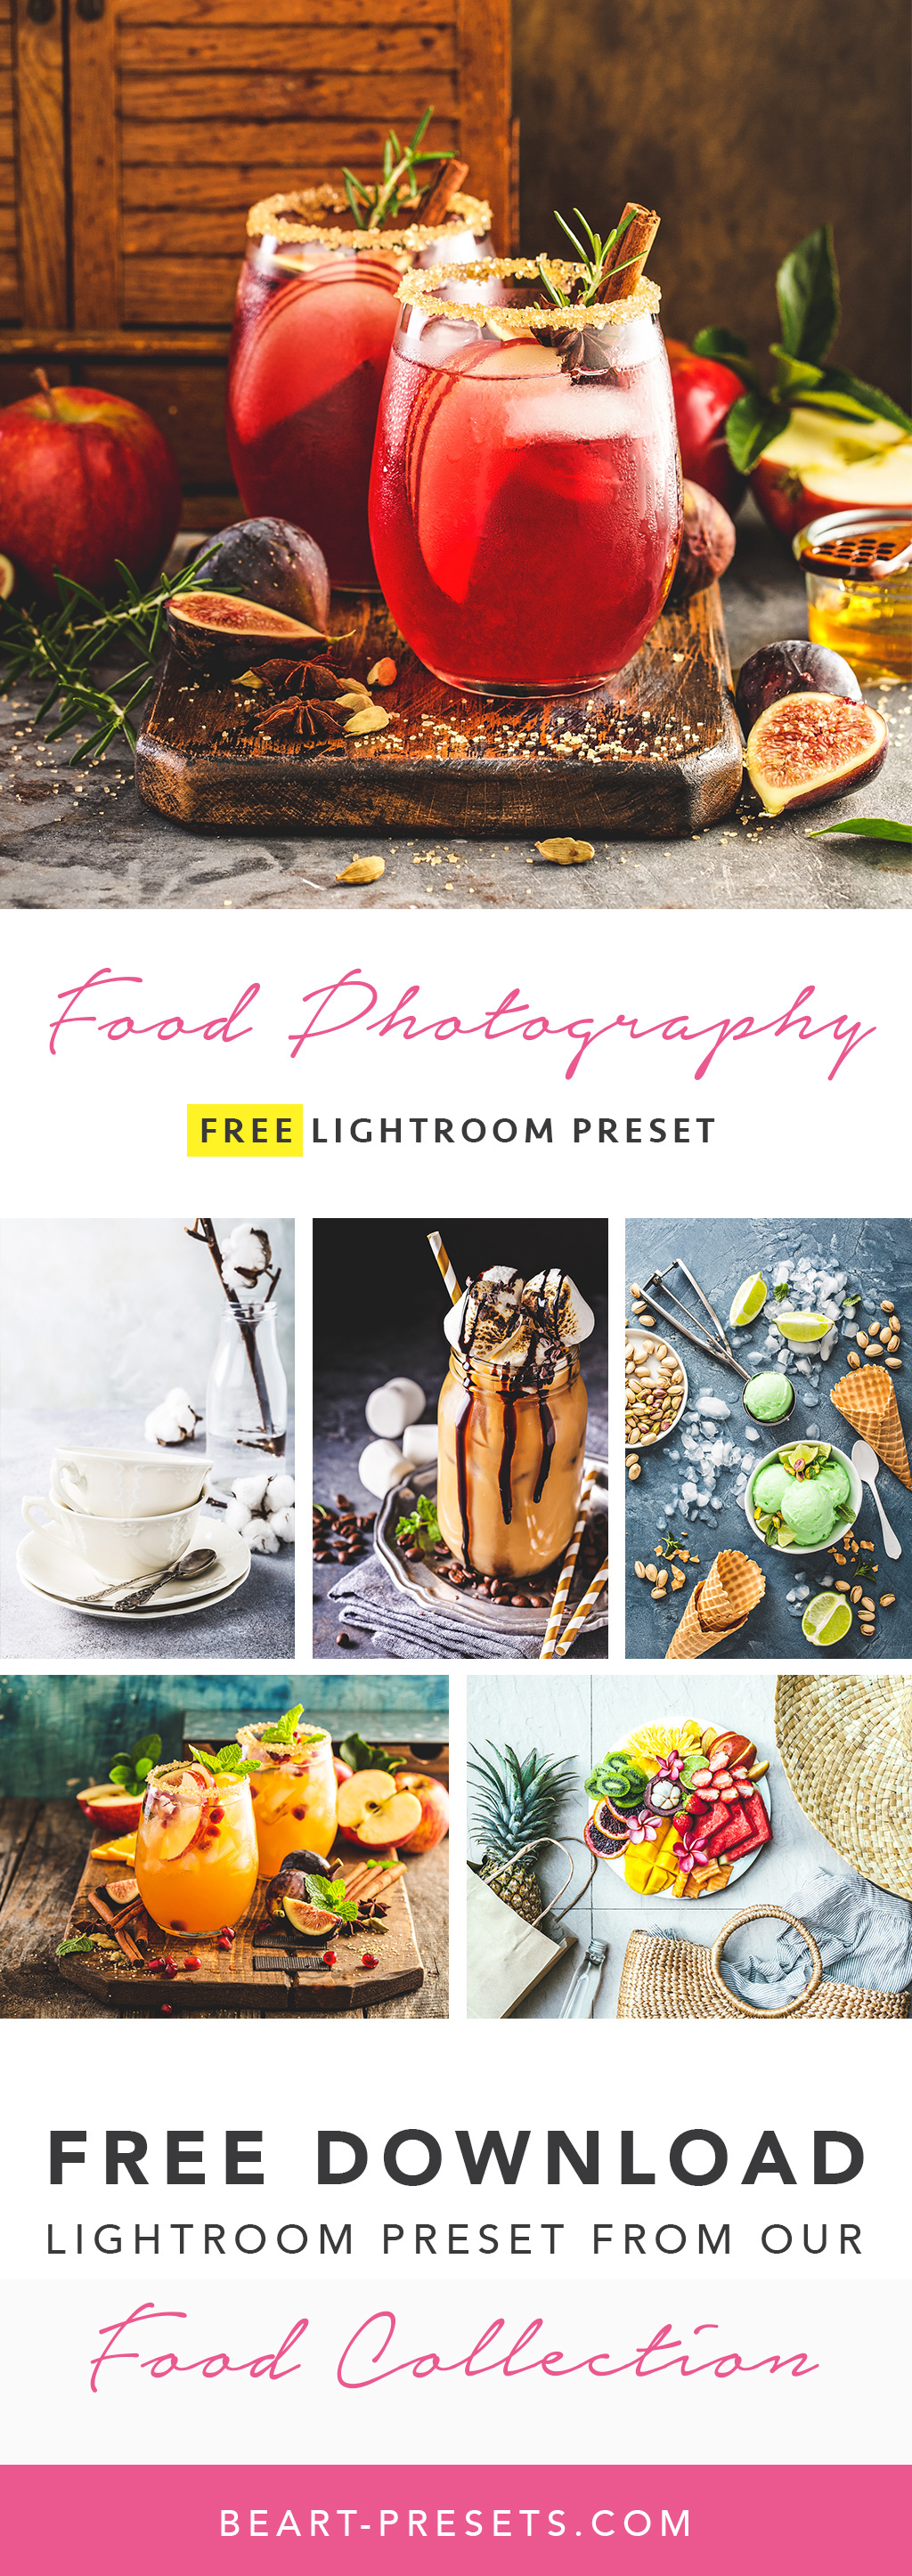 Free Food Photography Preset for Adobe Lightroom on Behance